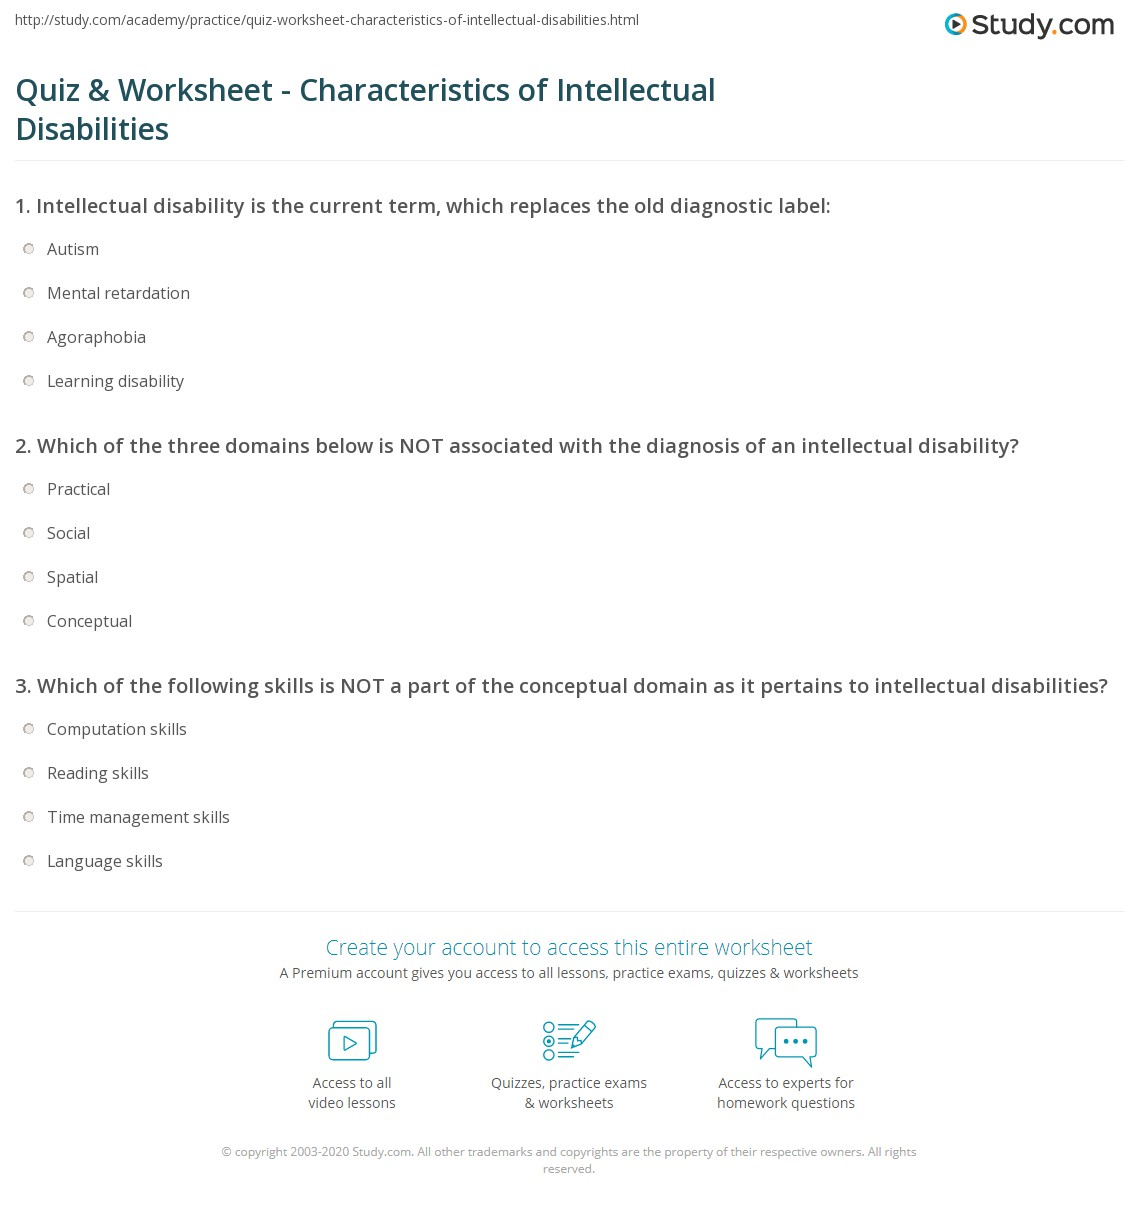 quiz & worksheet - characteristics of intellectual disabilities